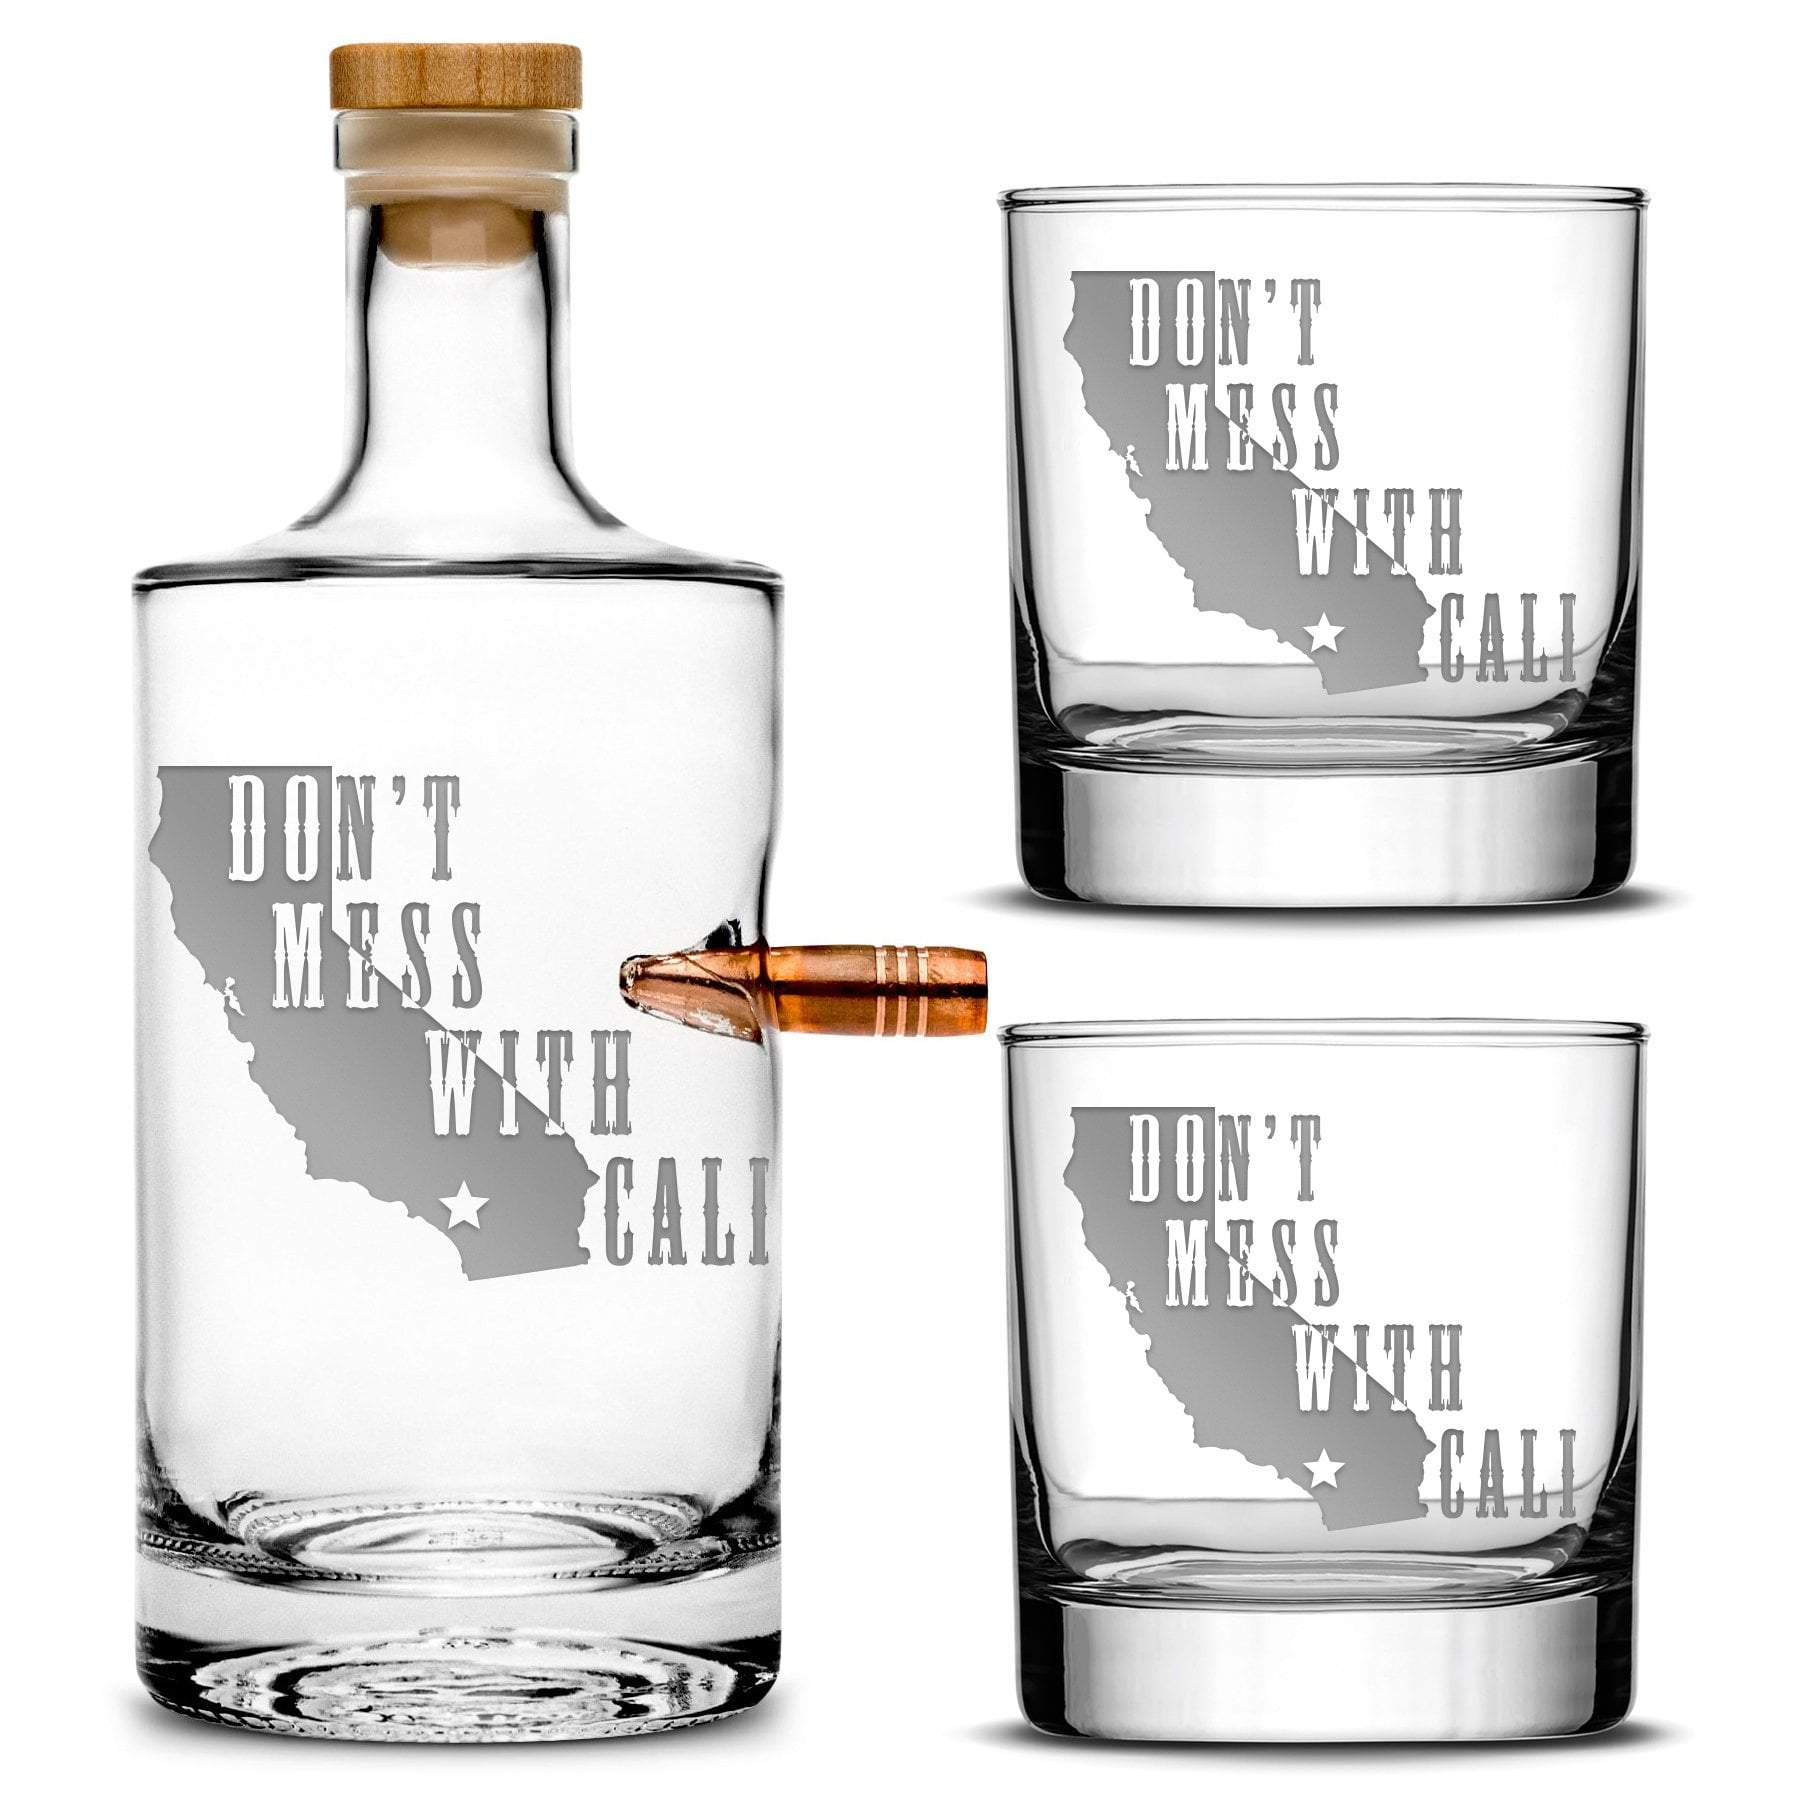 "Silver Etch Premium .50 Cal BMG Bullet Bottle Gift Set - Jersey Whiskey Decanter with Cork Stopper, ""Don't Mess With Cali"" - 750mL Integrity Bottles"